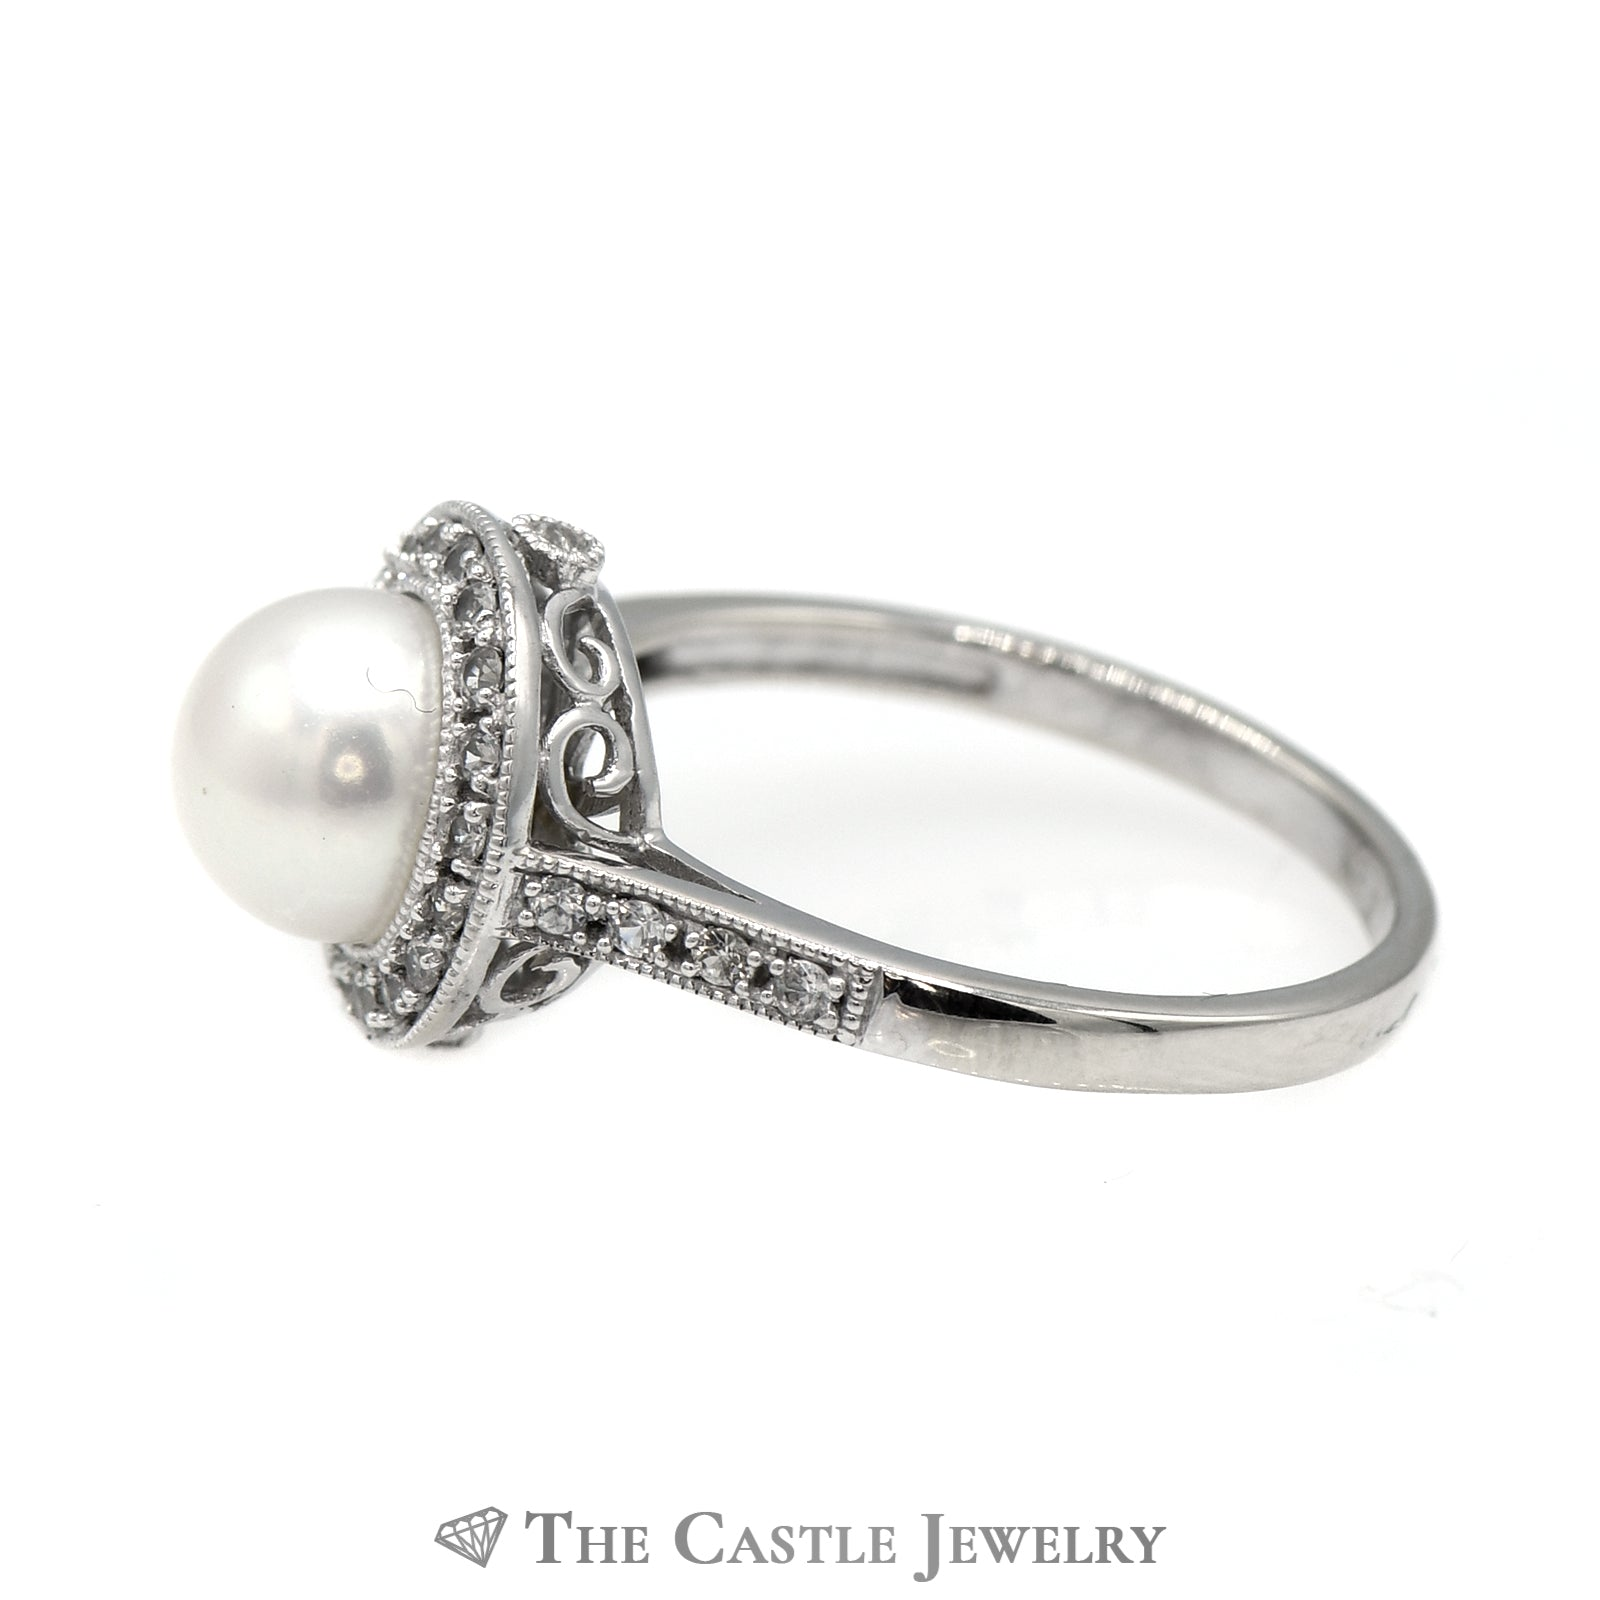 8mm Pearl Ring with White Topaz Halo & Accents in 14k White Gold-2